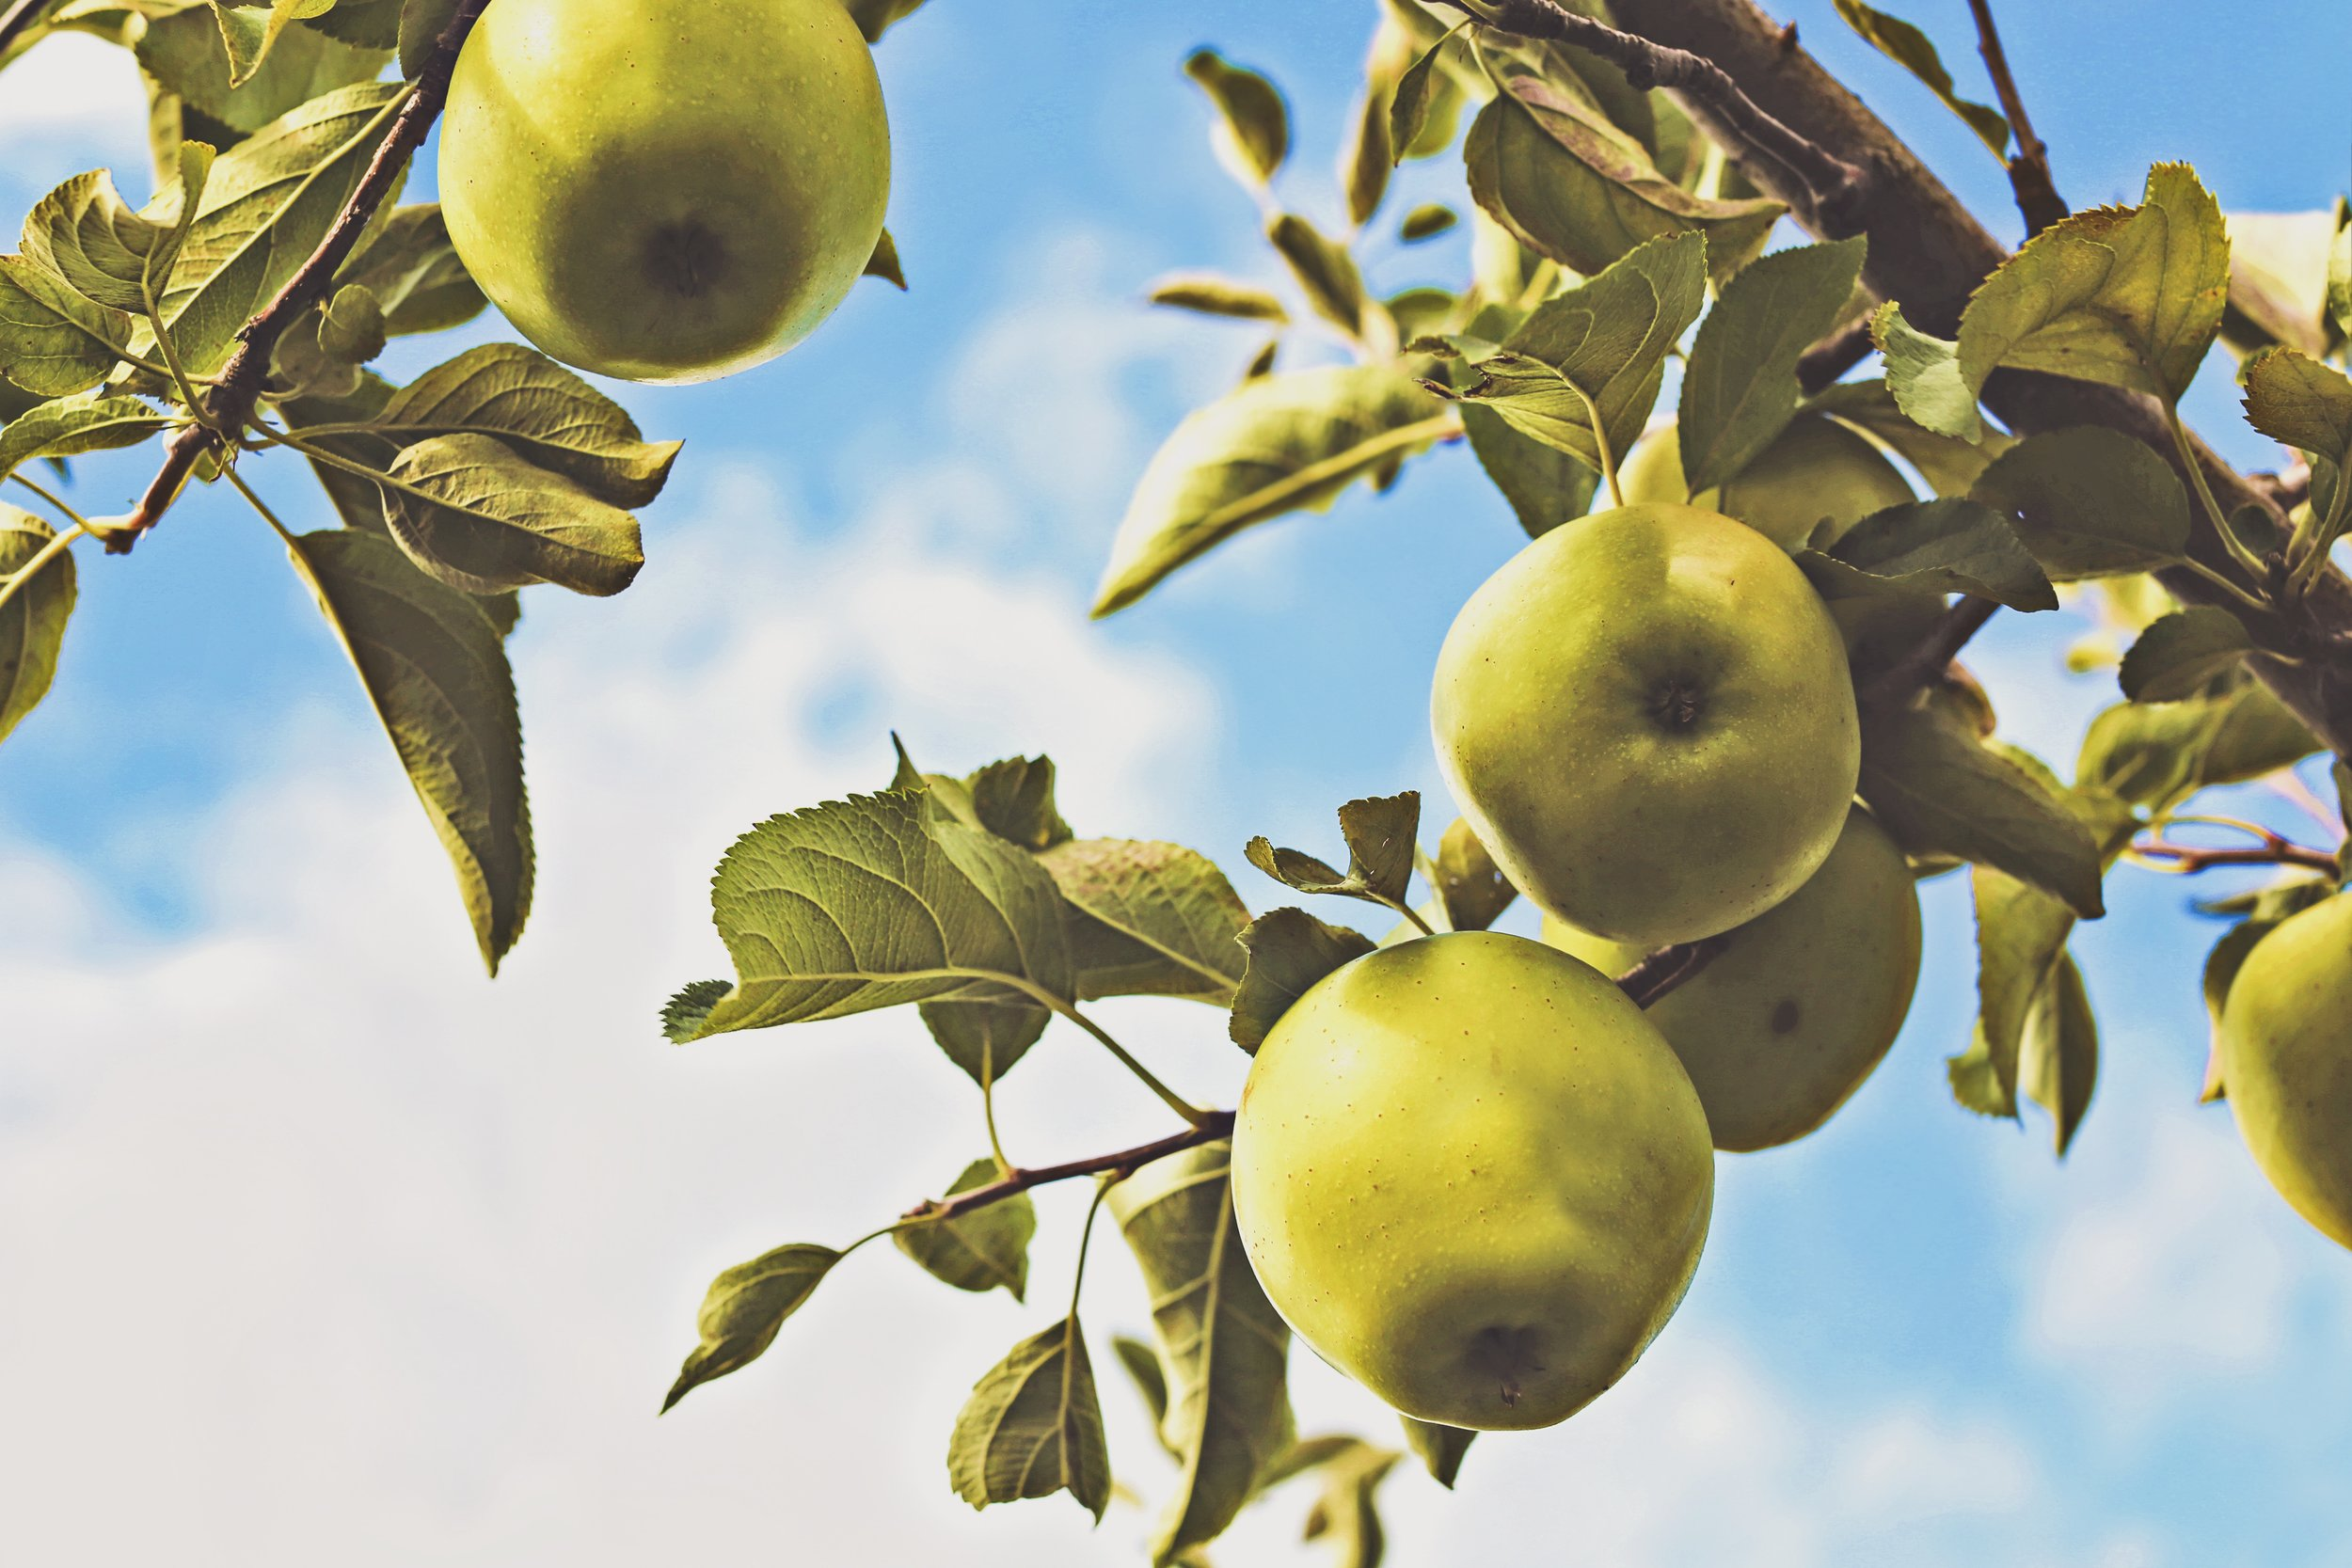 green apples dangling from the tree on a background of blue sky with white puffy clouds